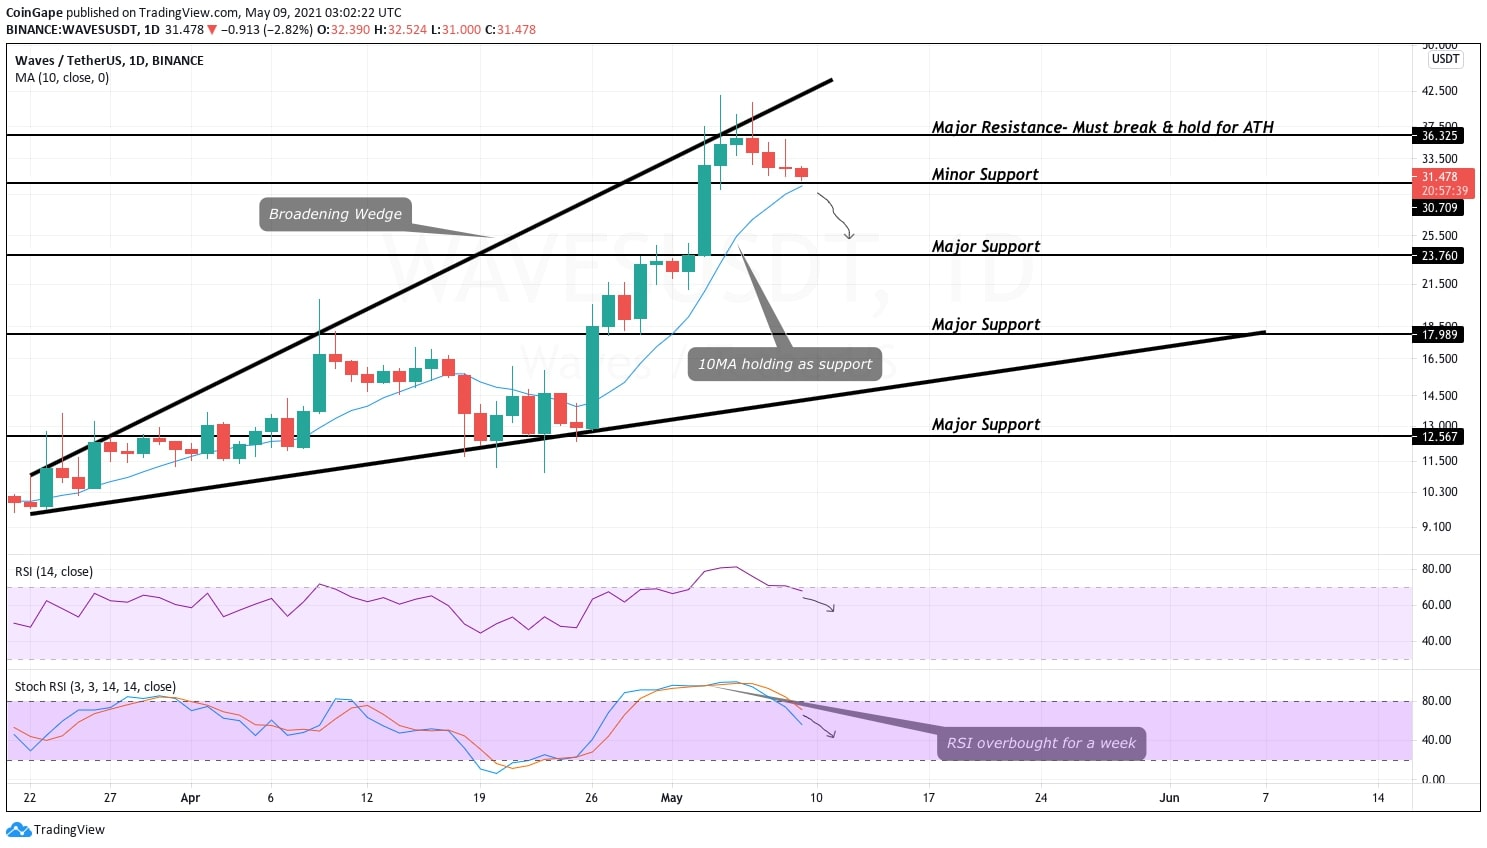 WAVES Price Analysis: Waves Rides Wave to ATH But Hits Month Long Trend